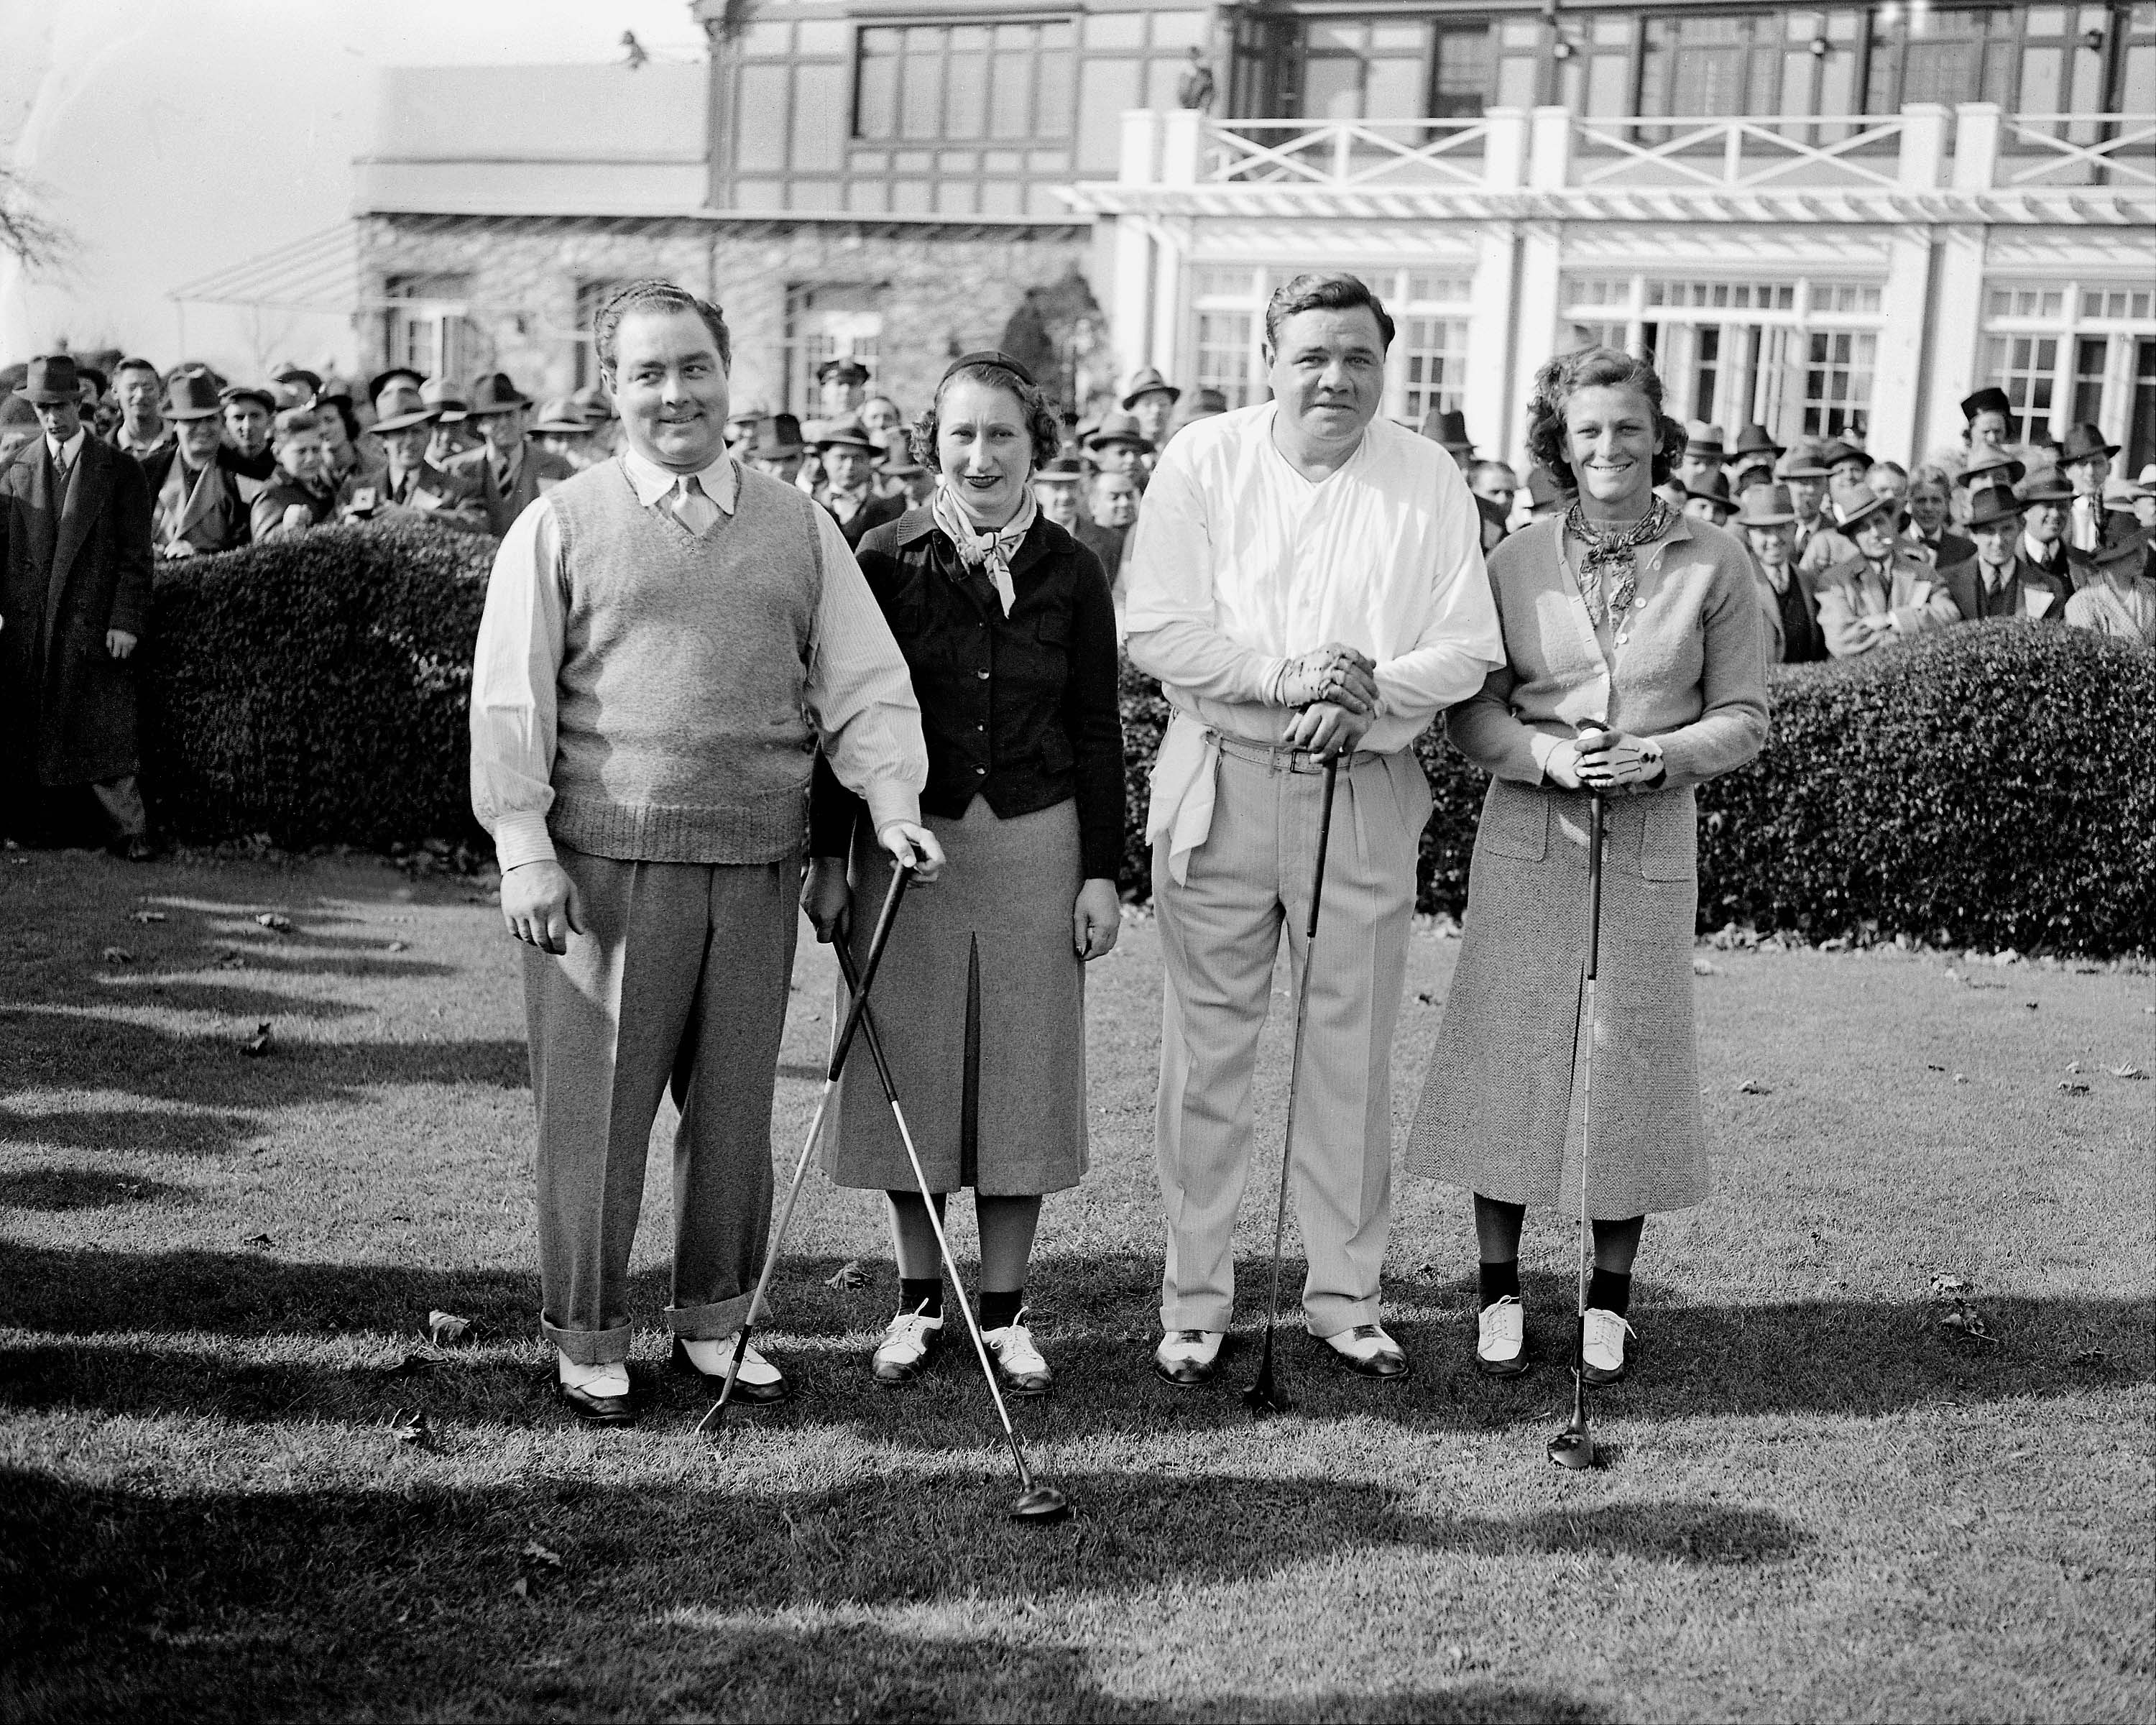 The foursome that drew the crowd